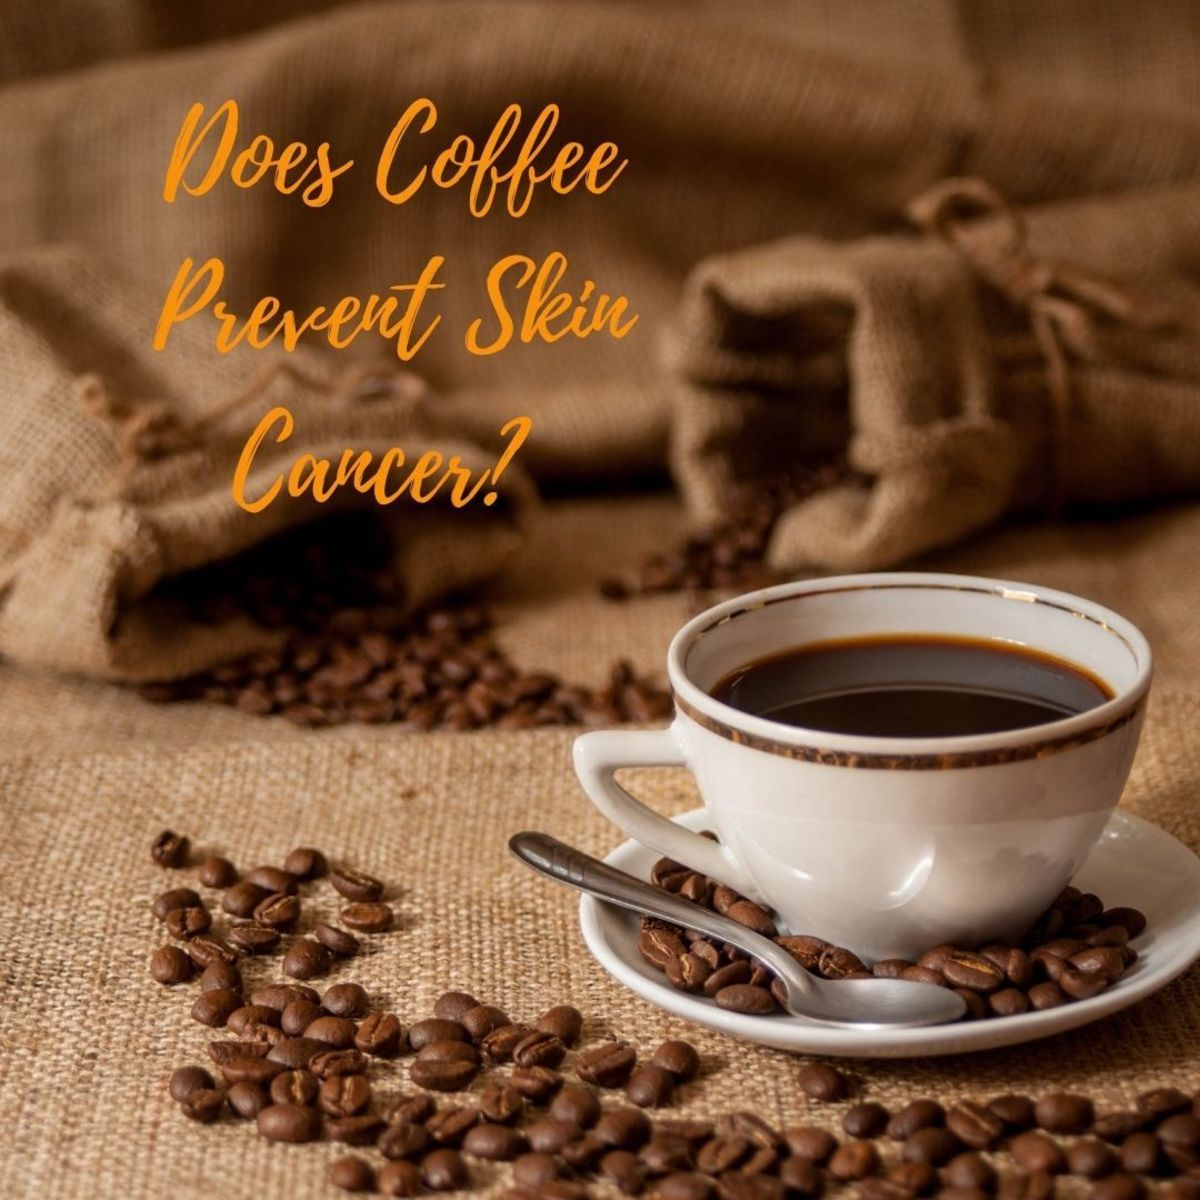 Does Coffee Prevent Skin Cancer?